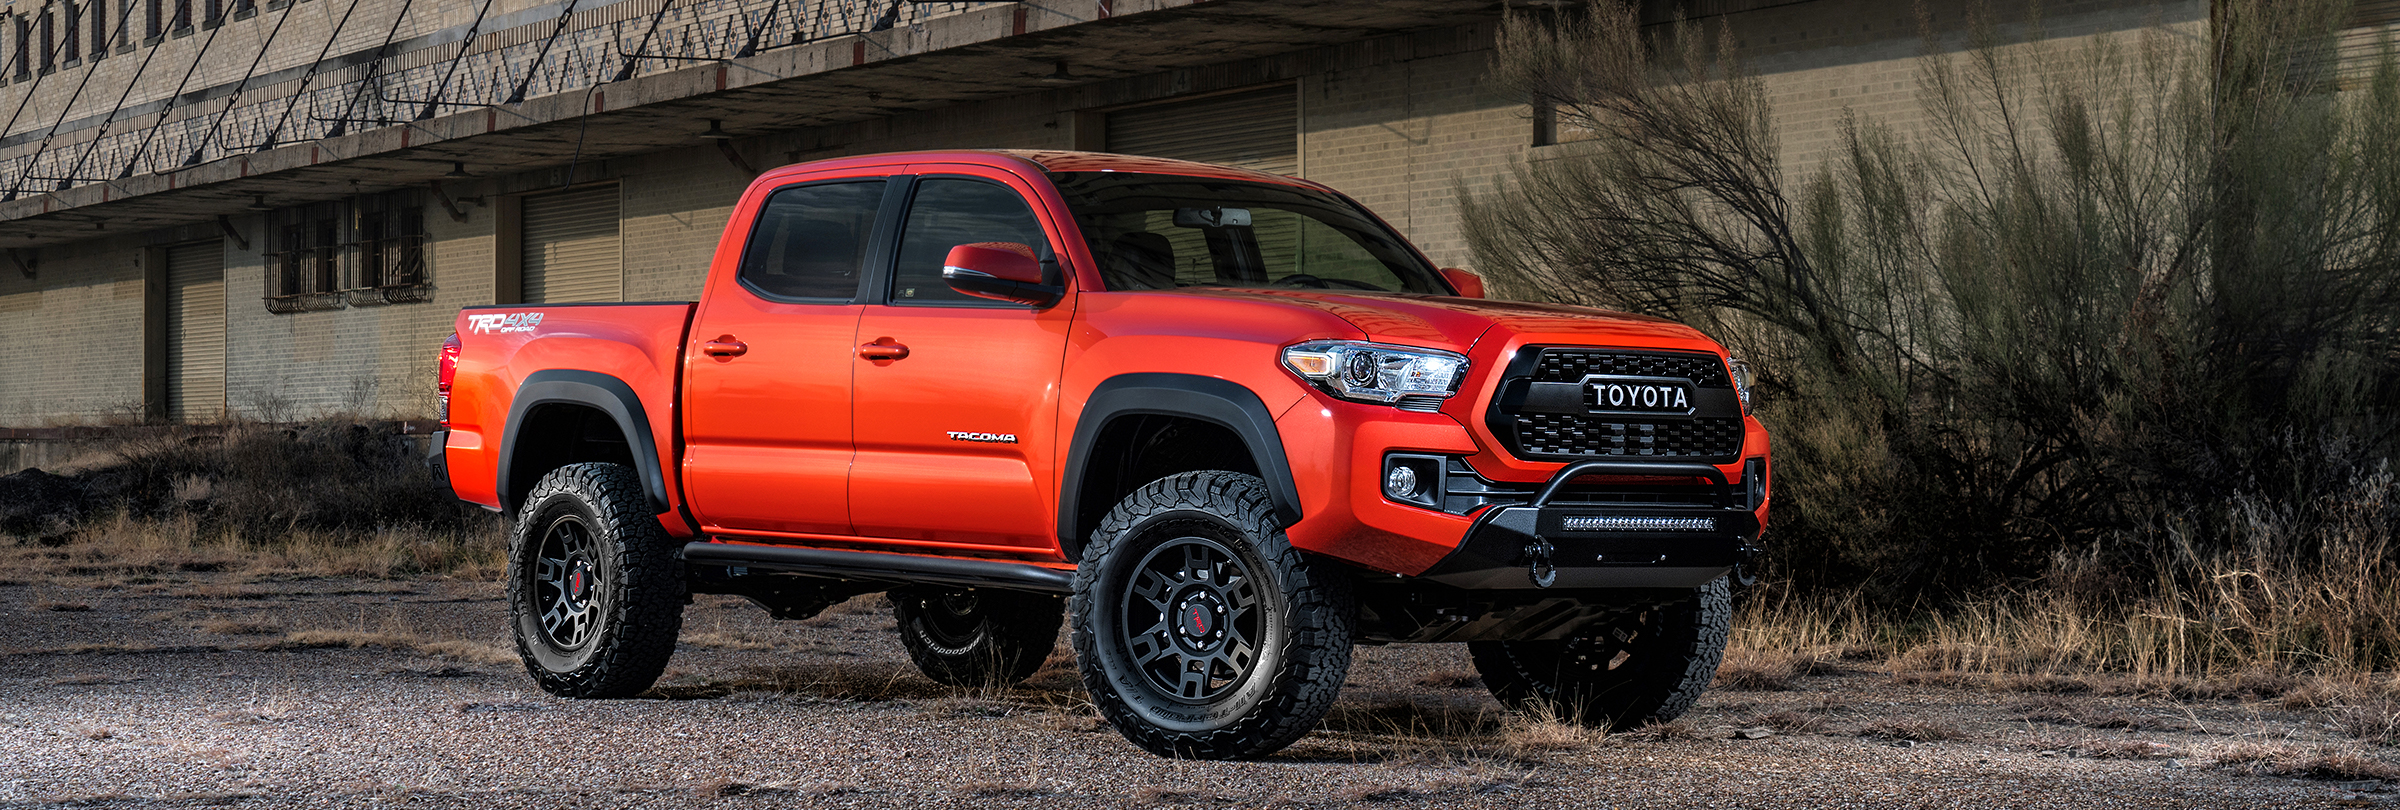 Toyota Tough | ReadyLIFT